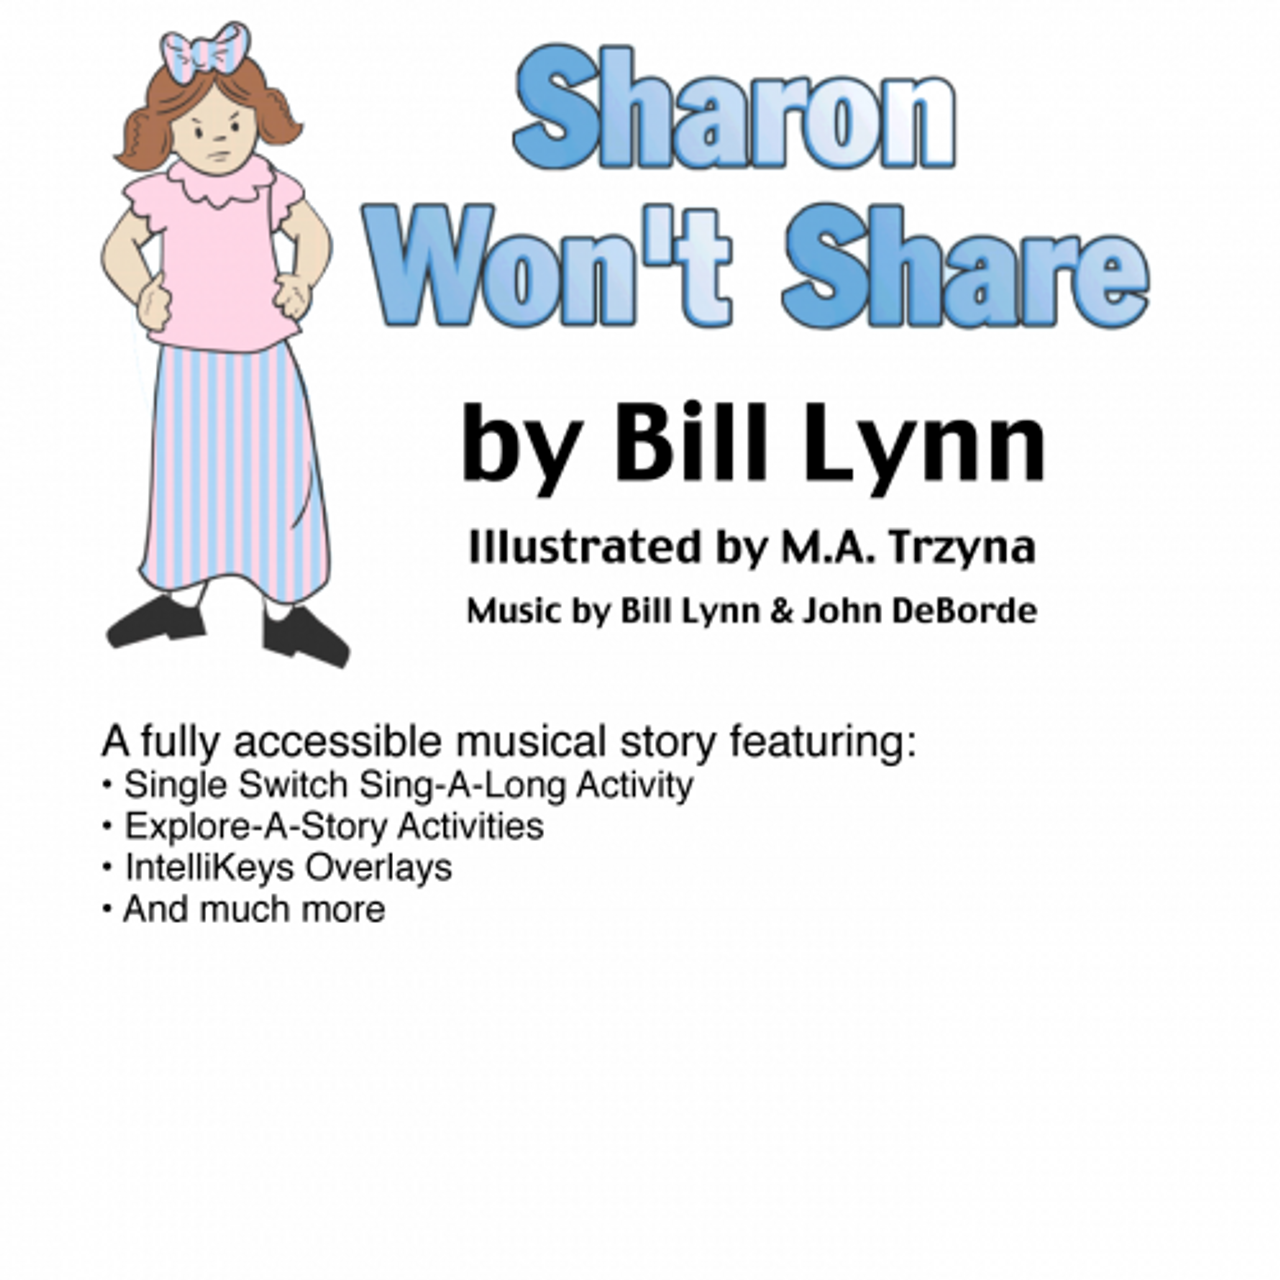 Sharon Won't Share